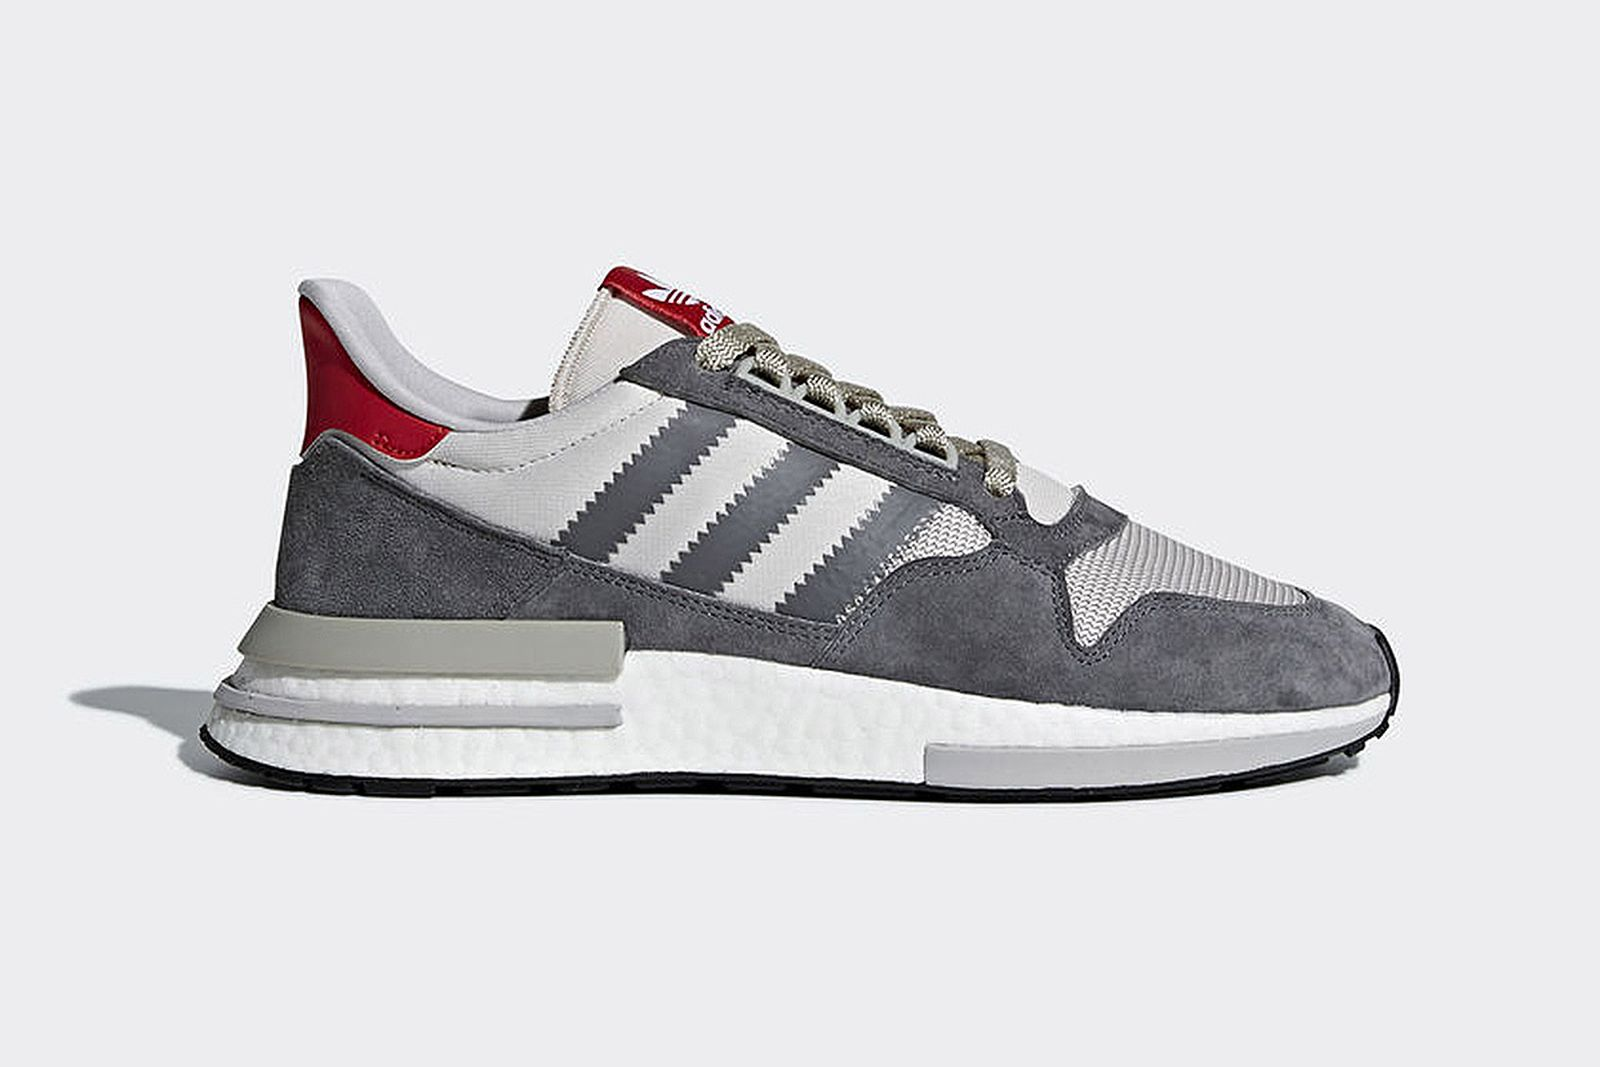 adidas zx500 rm release date price